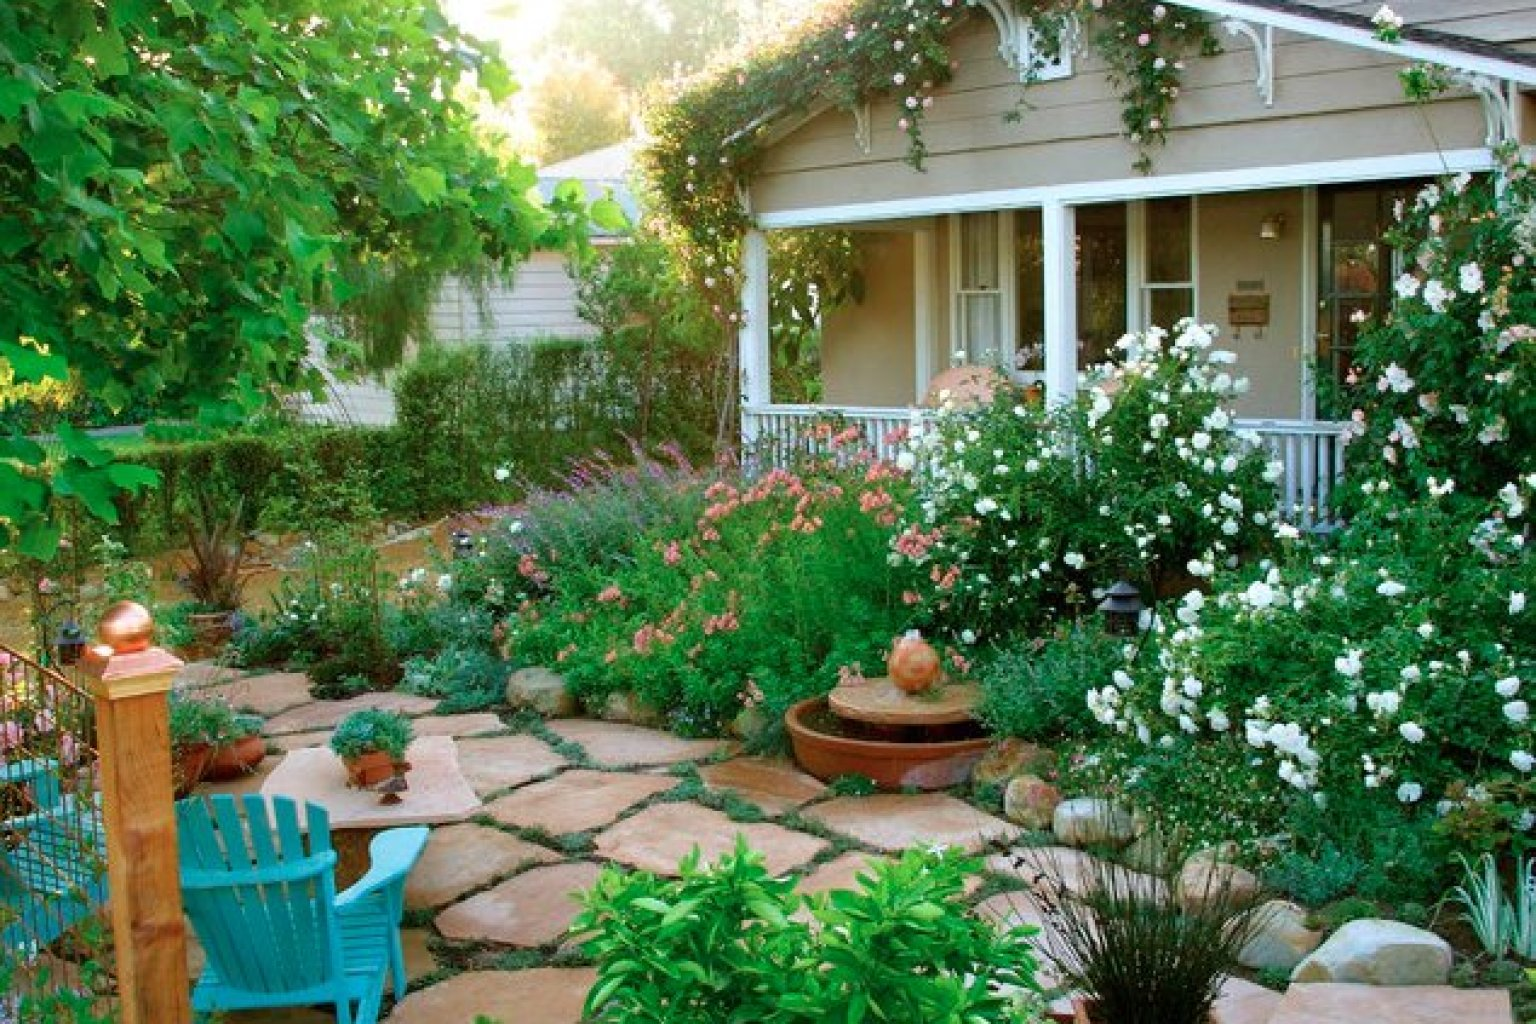 10 Cottage Gardens That Are Just Too Charming For Words (PHOTOS) | HuffPost